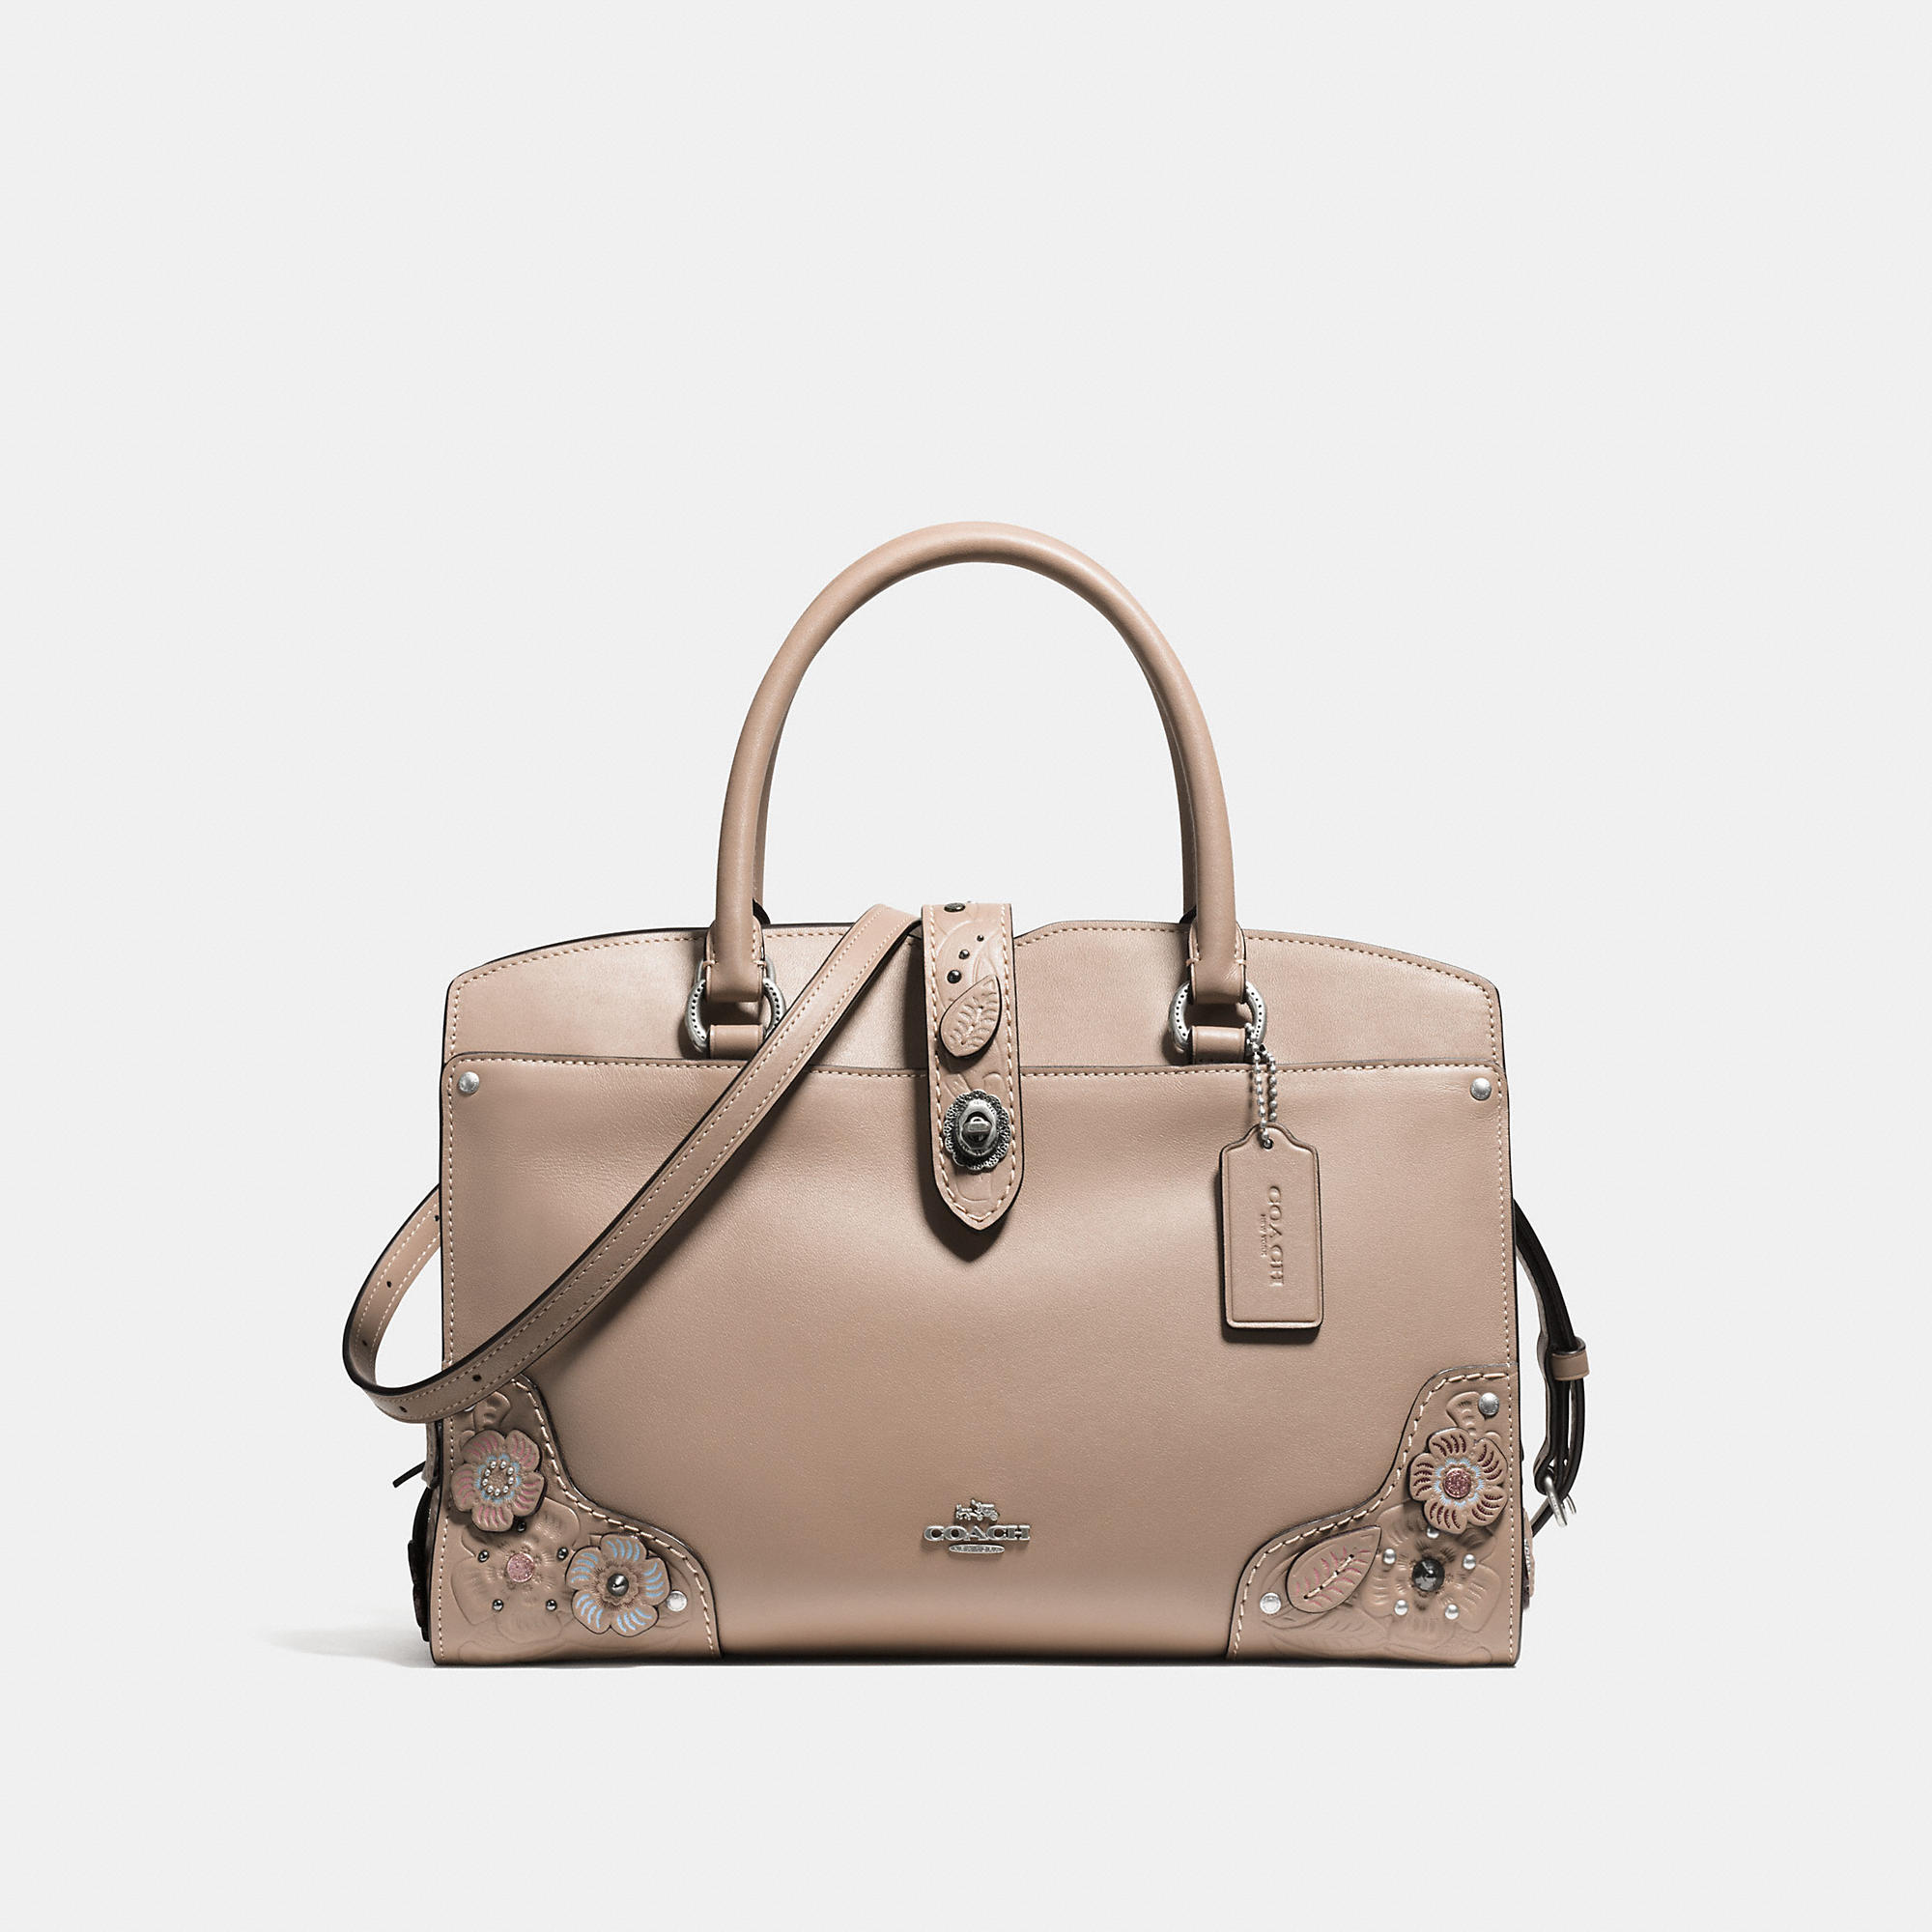 Coach Mercer Satchel 30 In Glovetanned Leather With Painted Tea Rose And Tooling